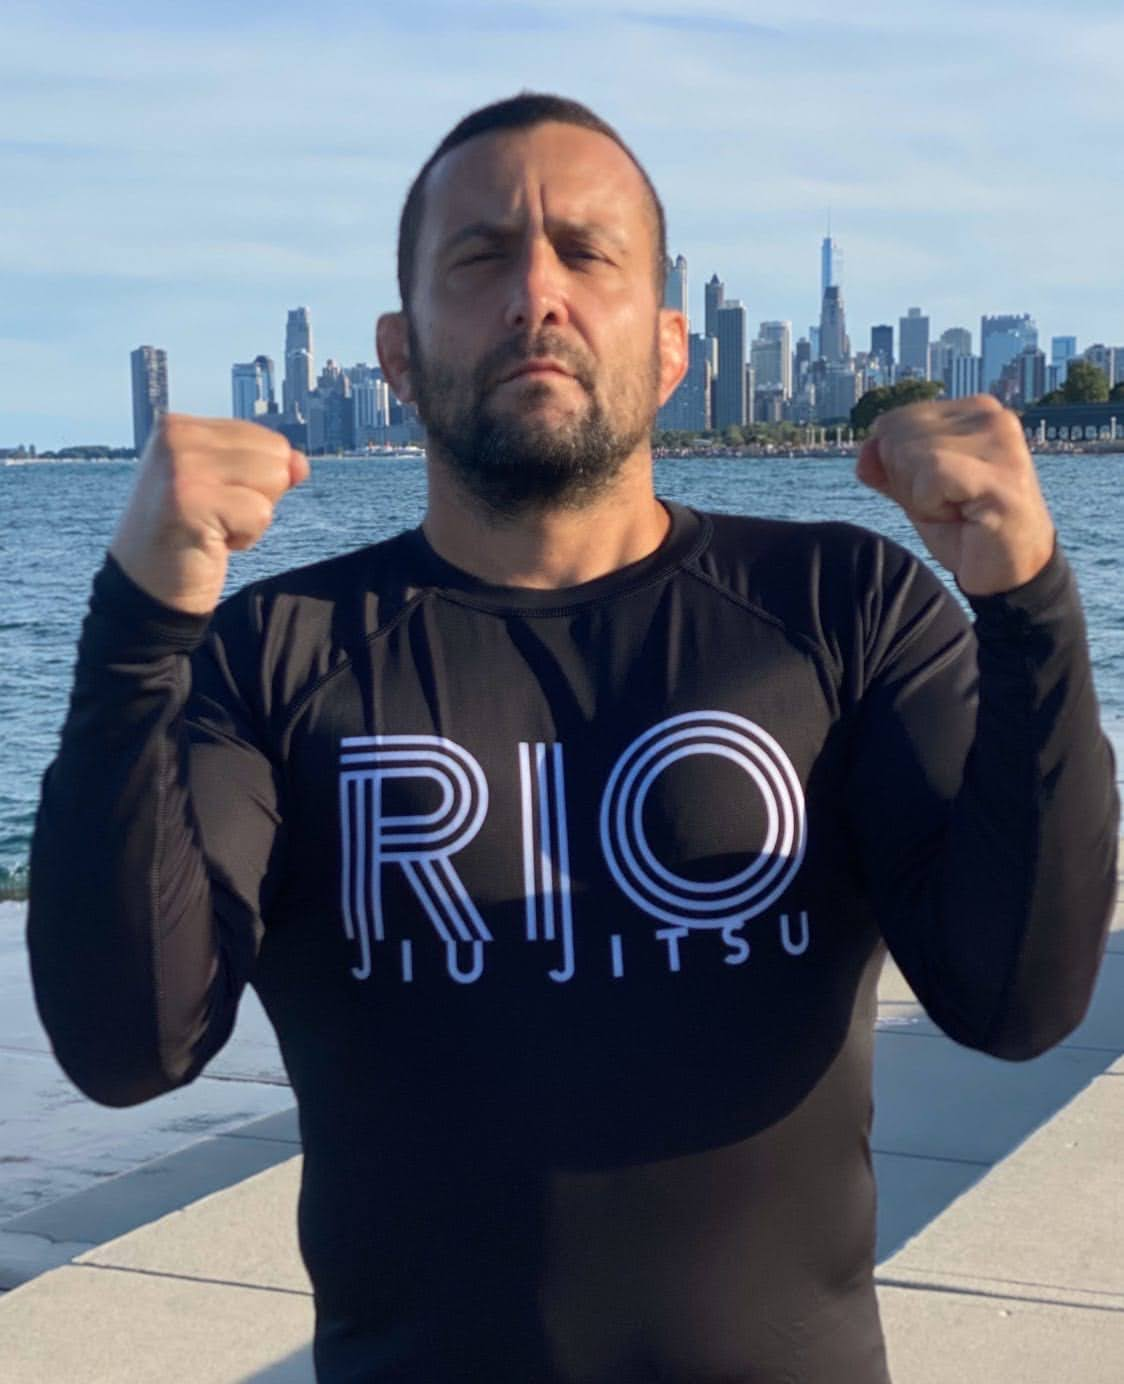 RIO JIU JITSU Rashguard - Made in the USA